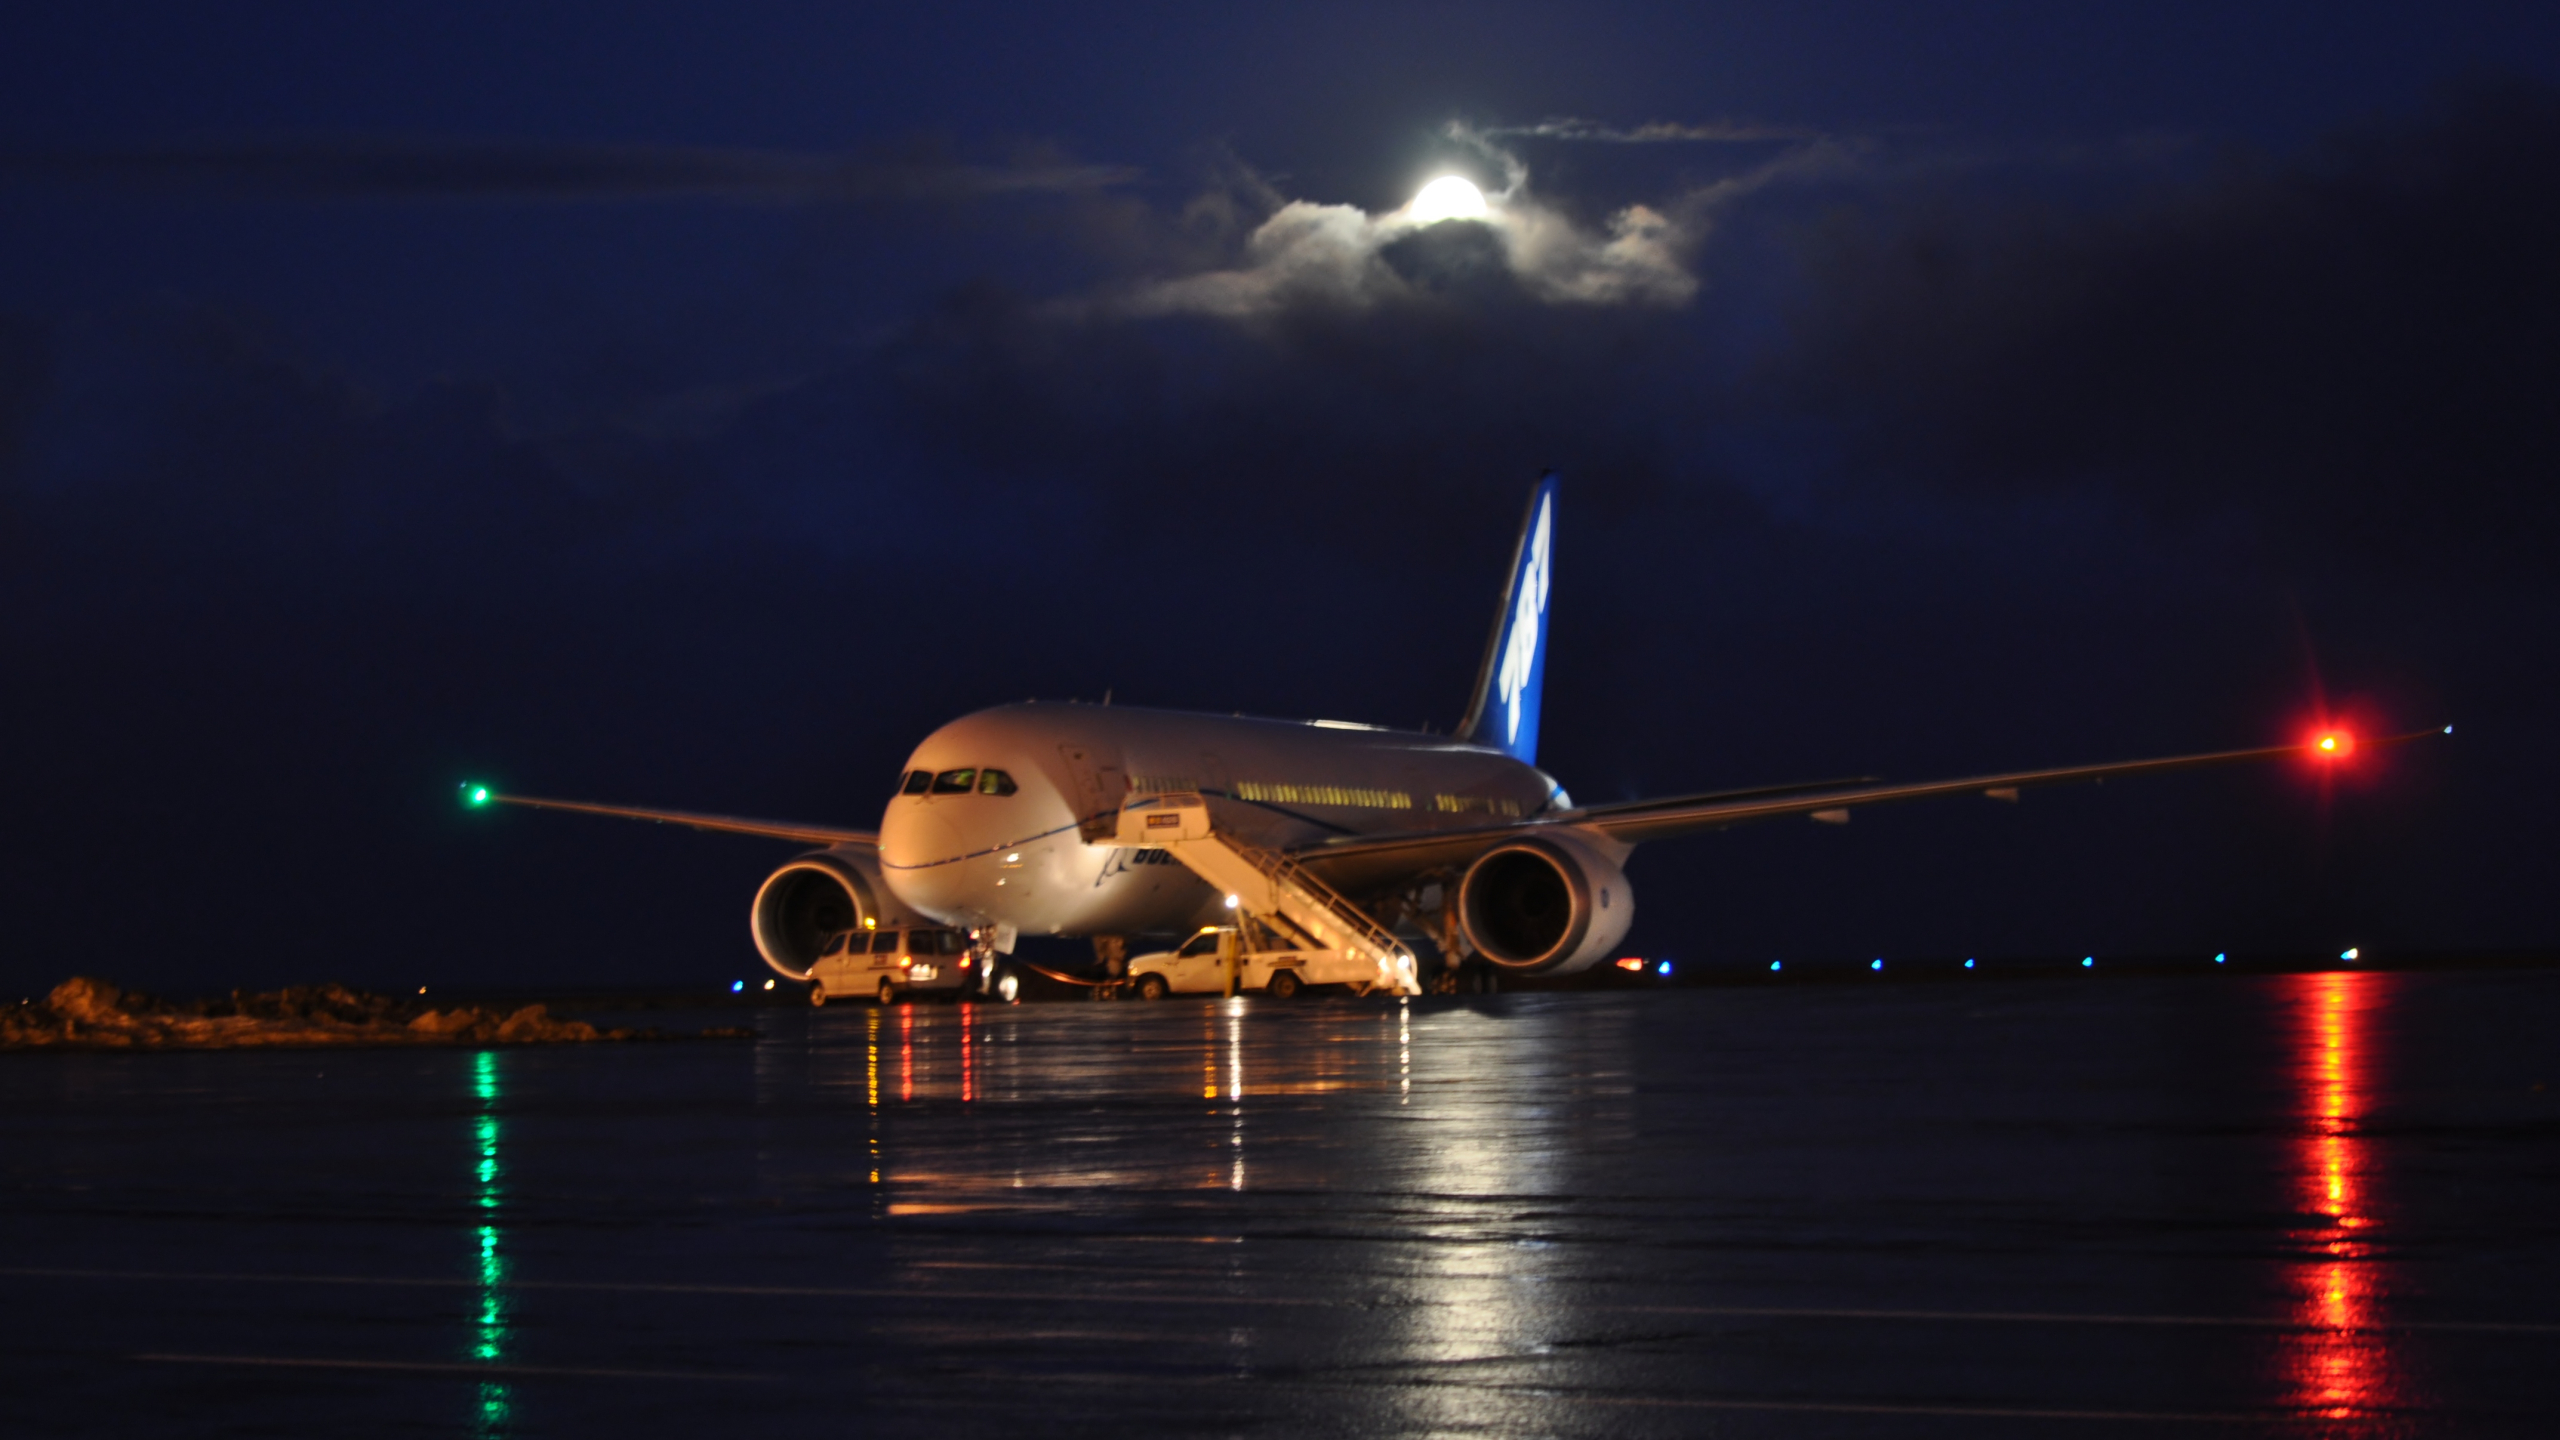 107 boeing hd wallpapers background images wallpaper abyss - Boeing wallpapers for desktop ...